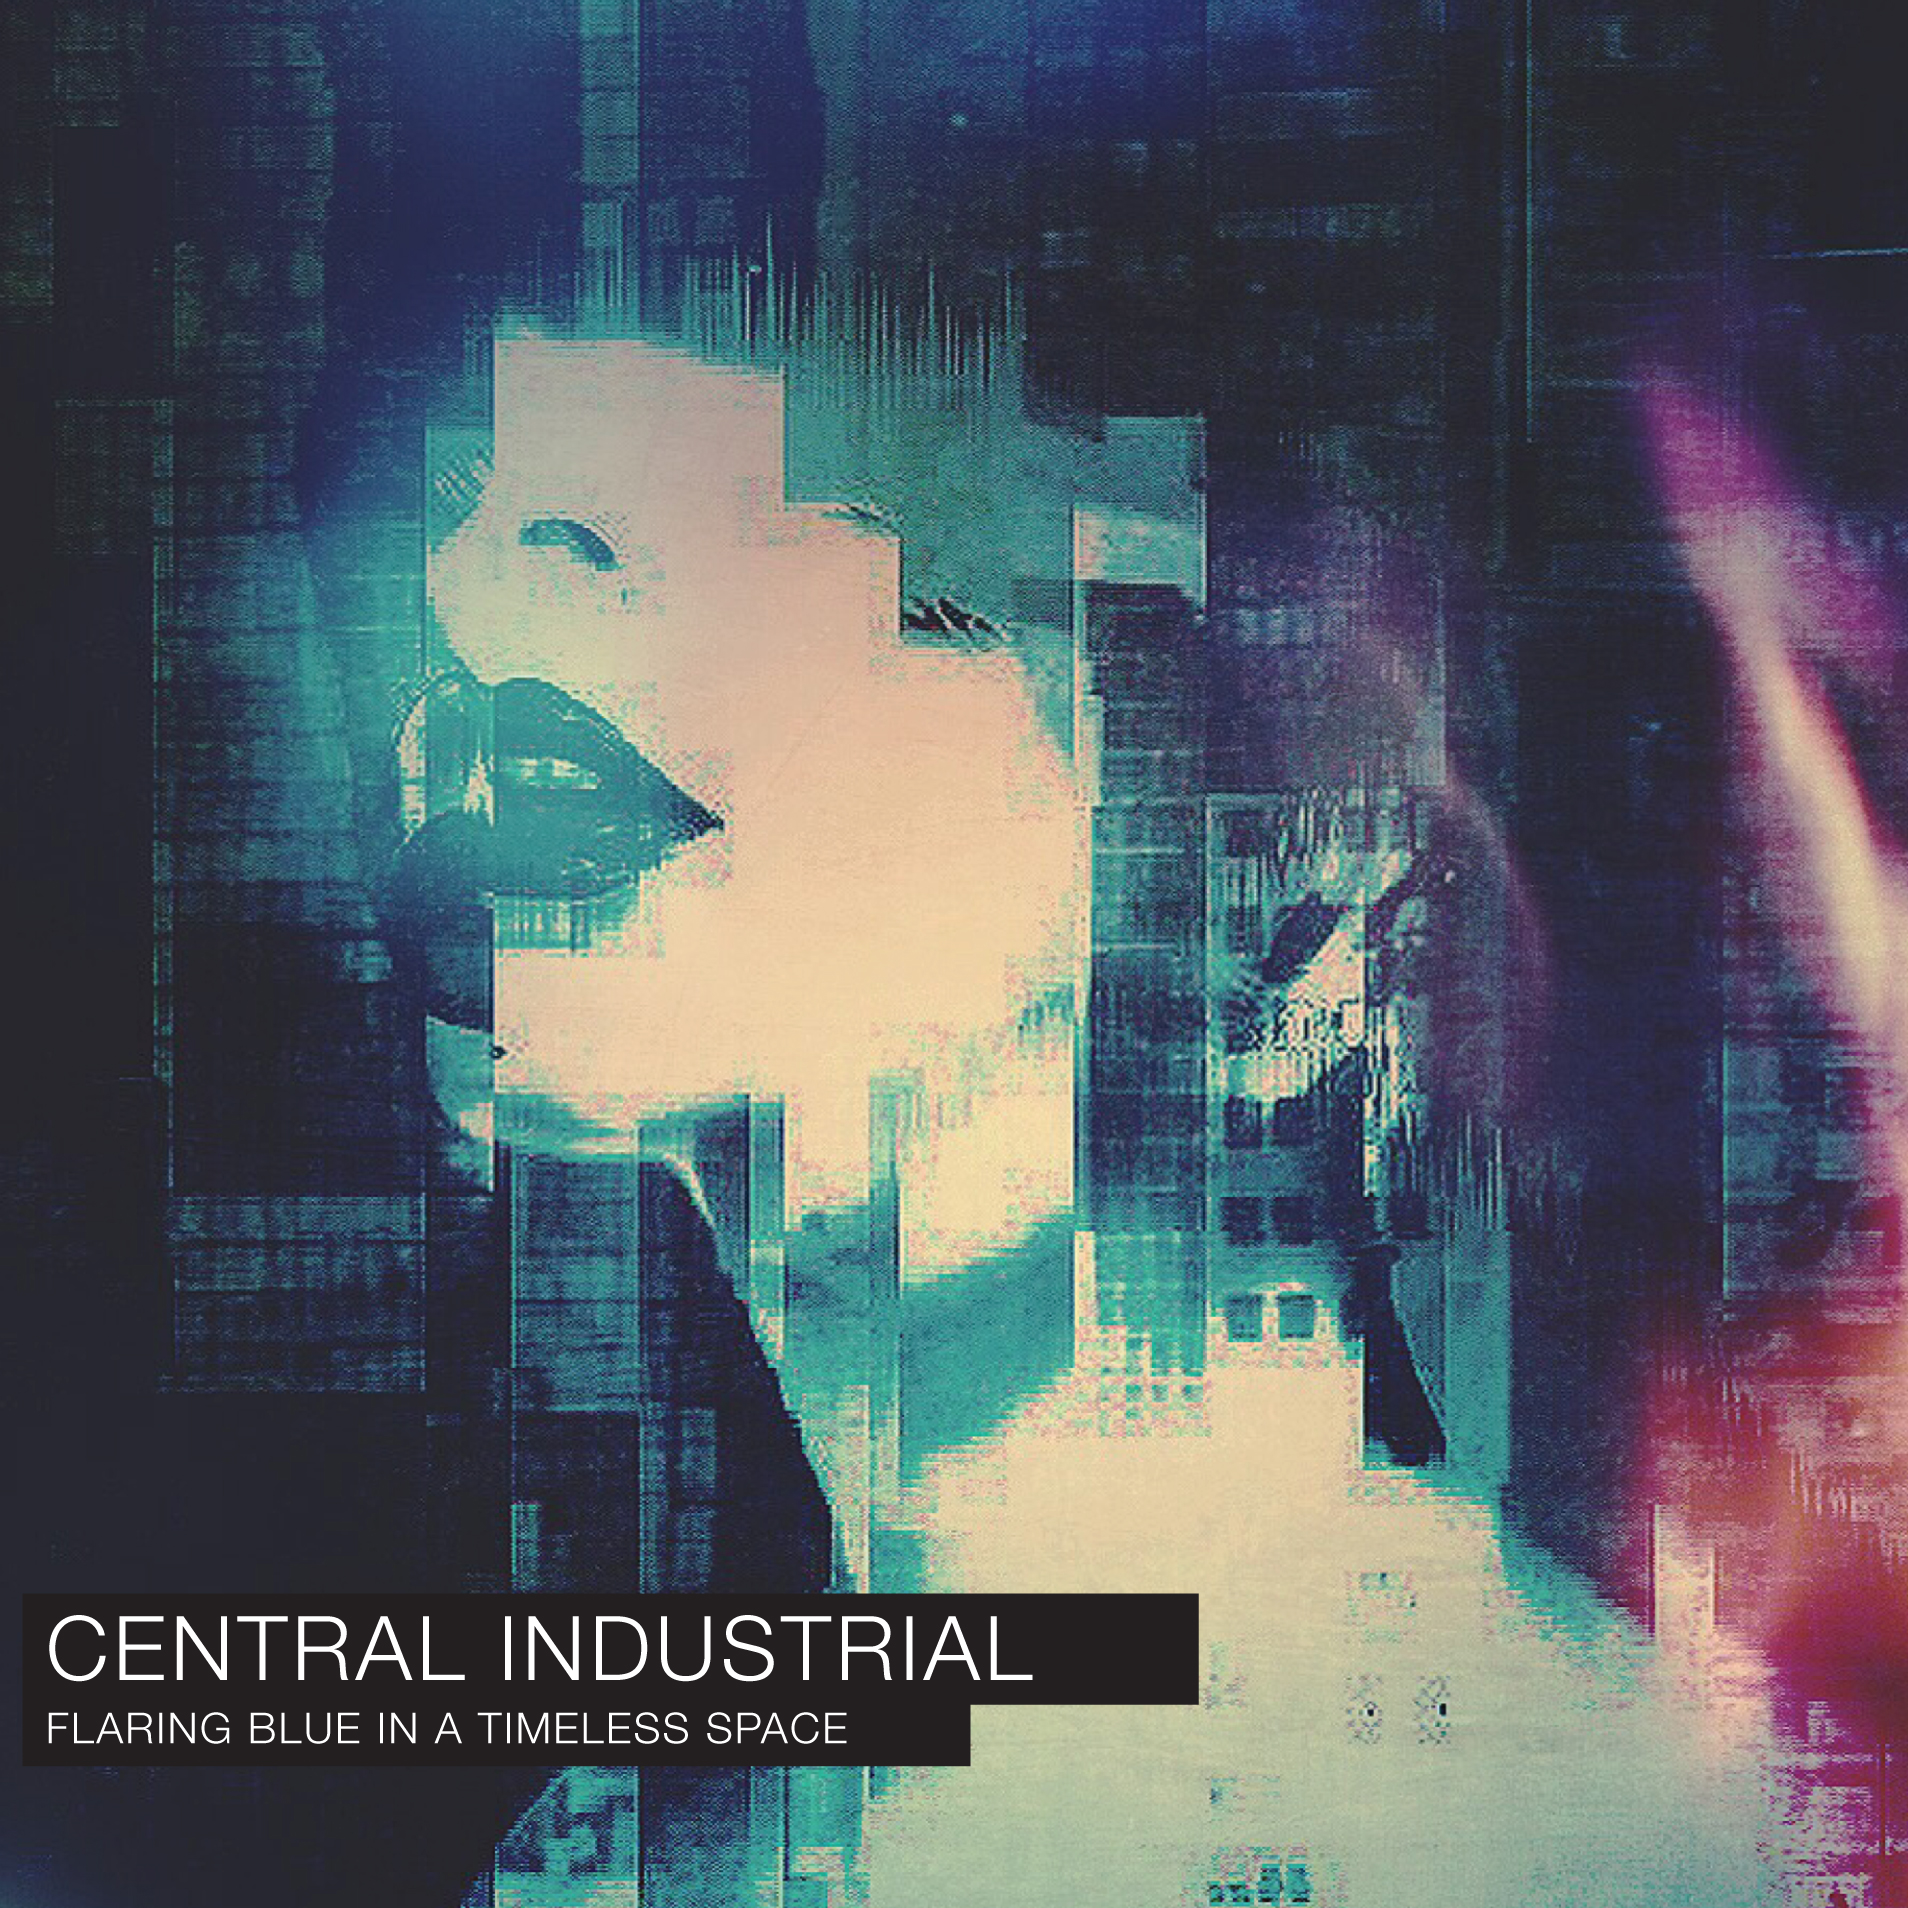 Artists: ASC, Central Industrial, Sam KDC, Synth Sense and Vaccine.